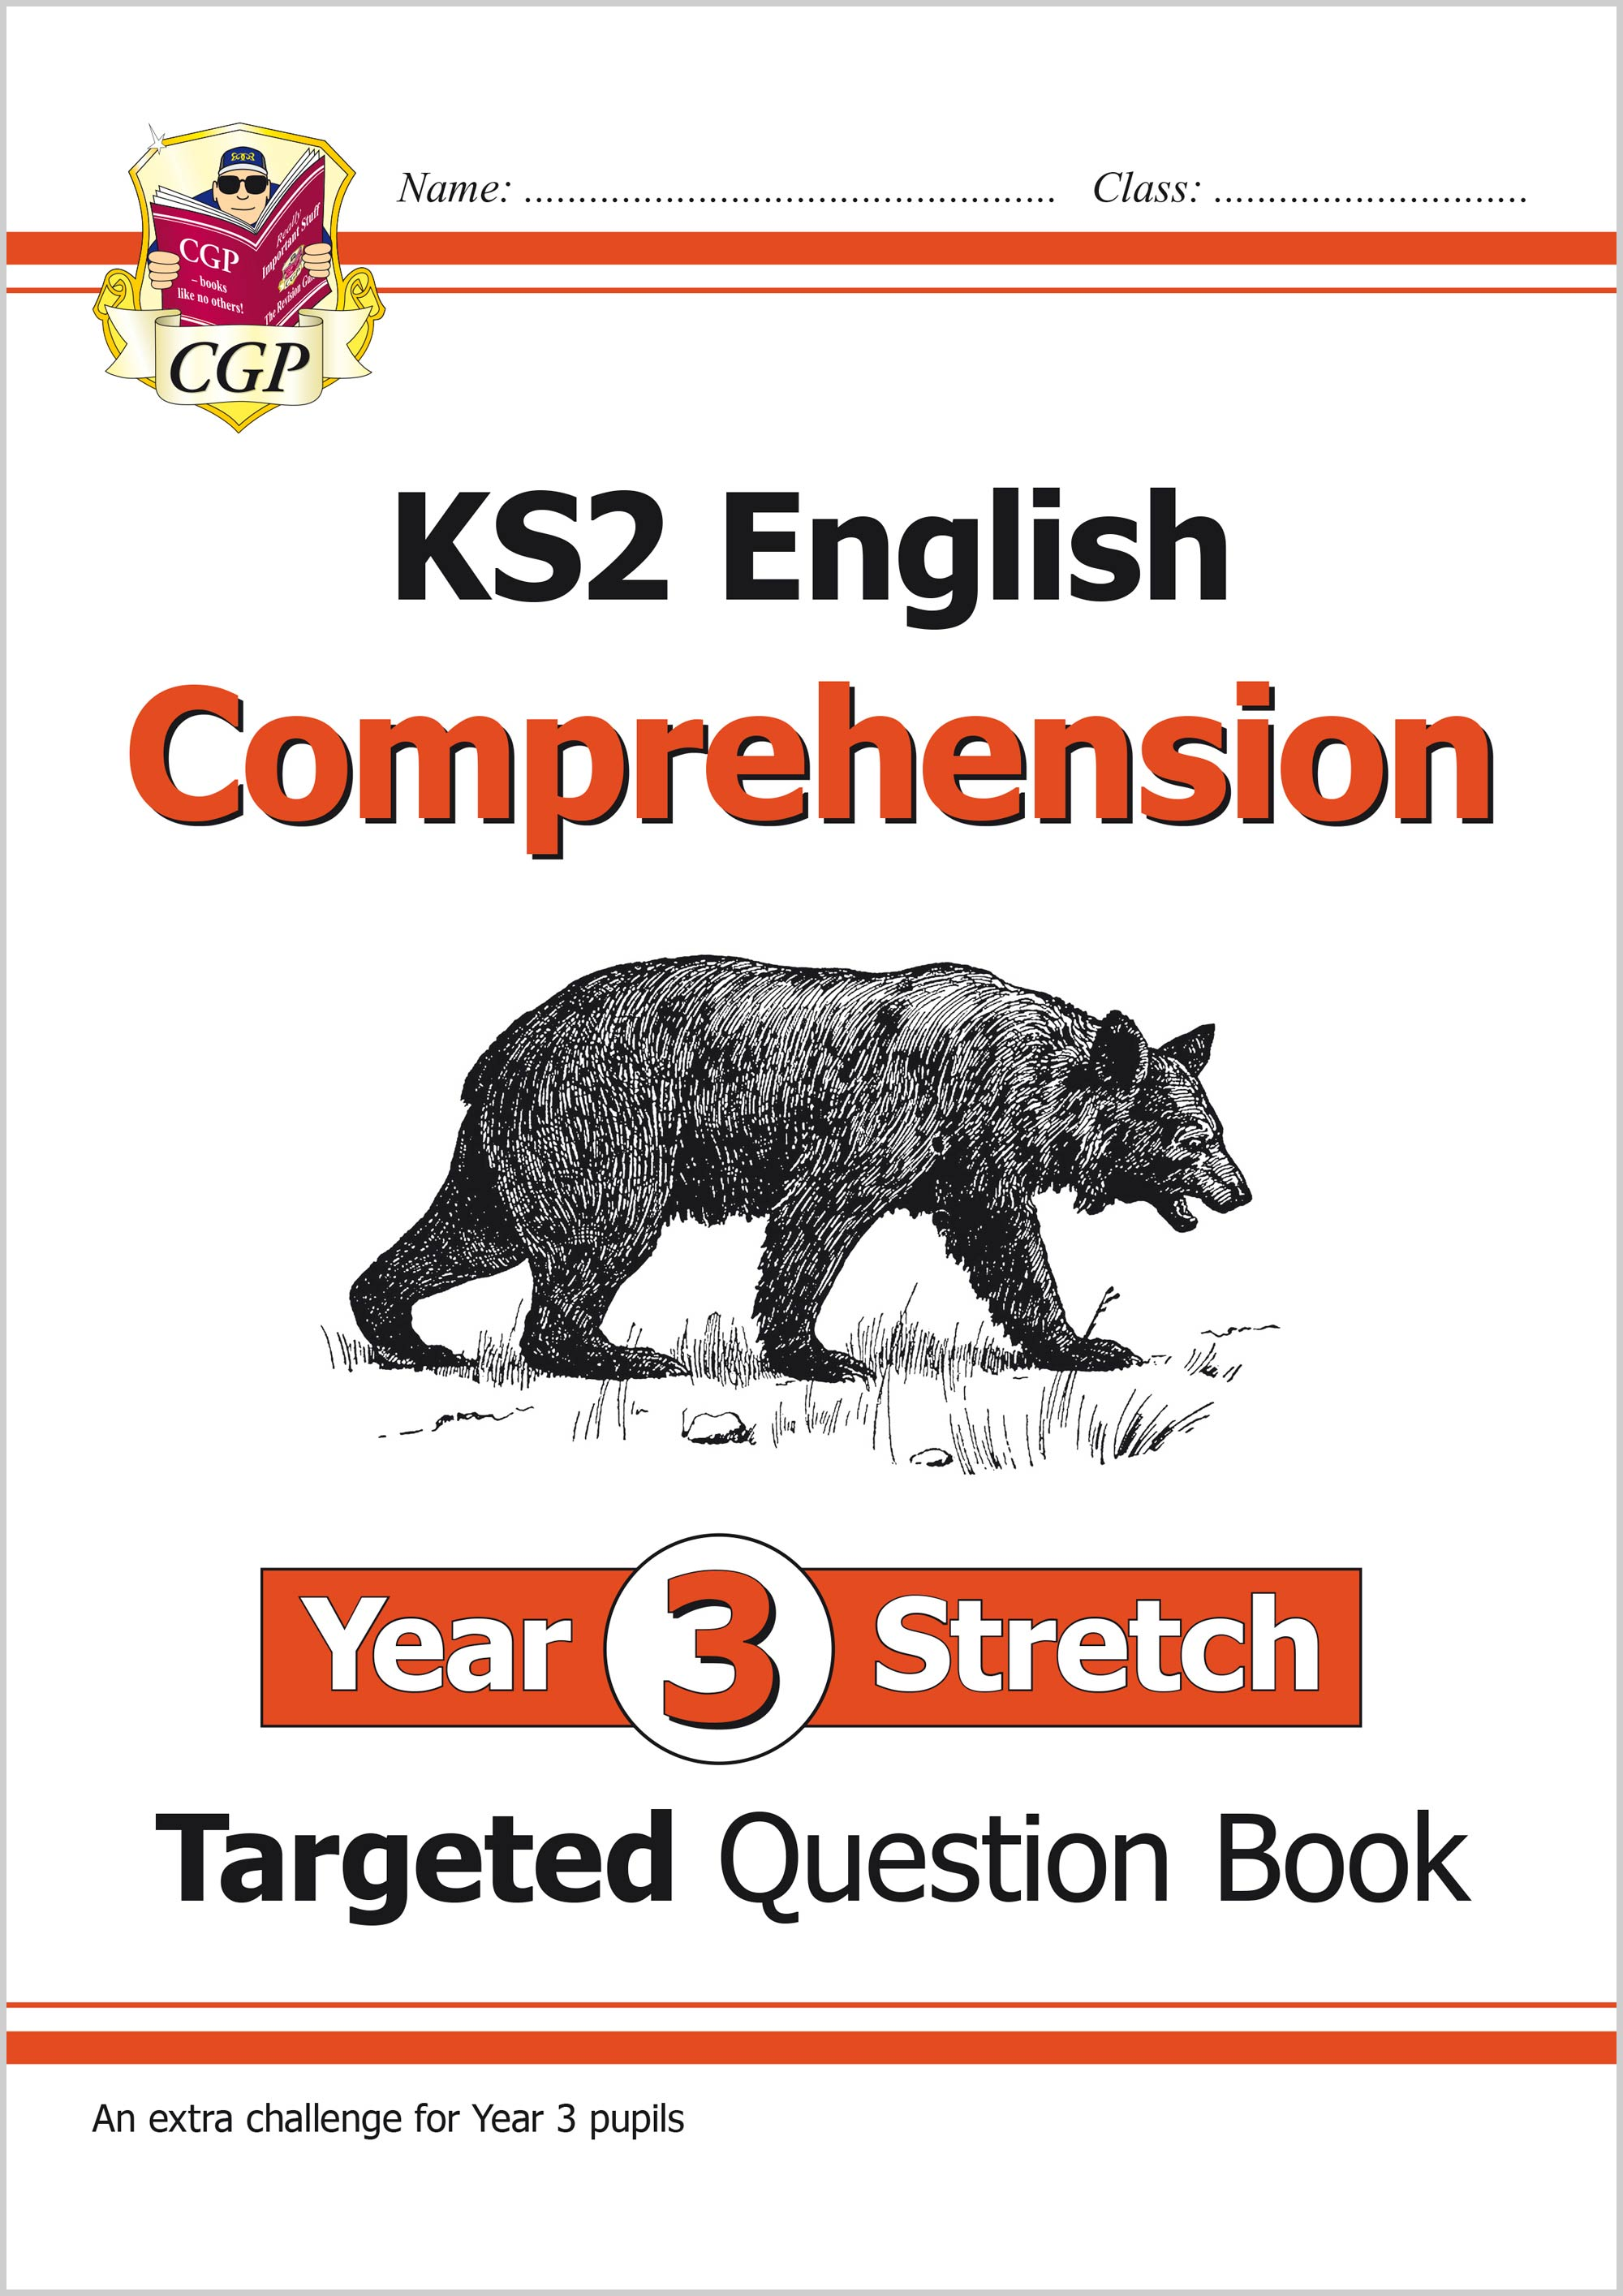 E3HCW21 - New KS2 English Targeted Question Book: Challenging Comprehension - Year 3 Stretch (with A